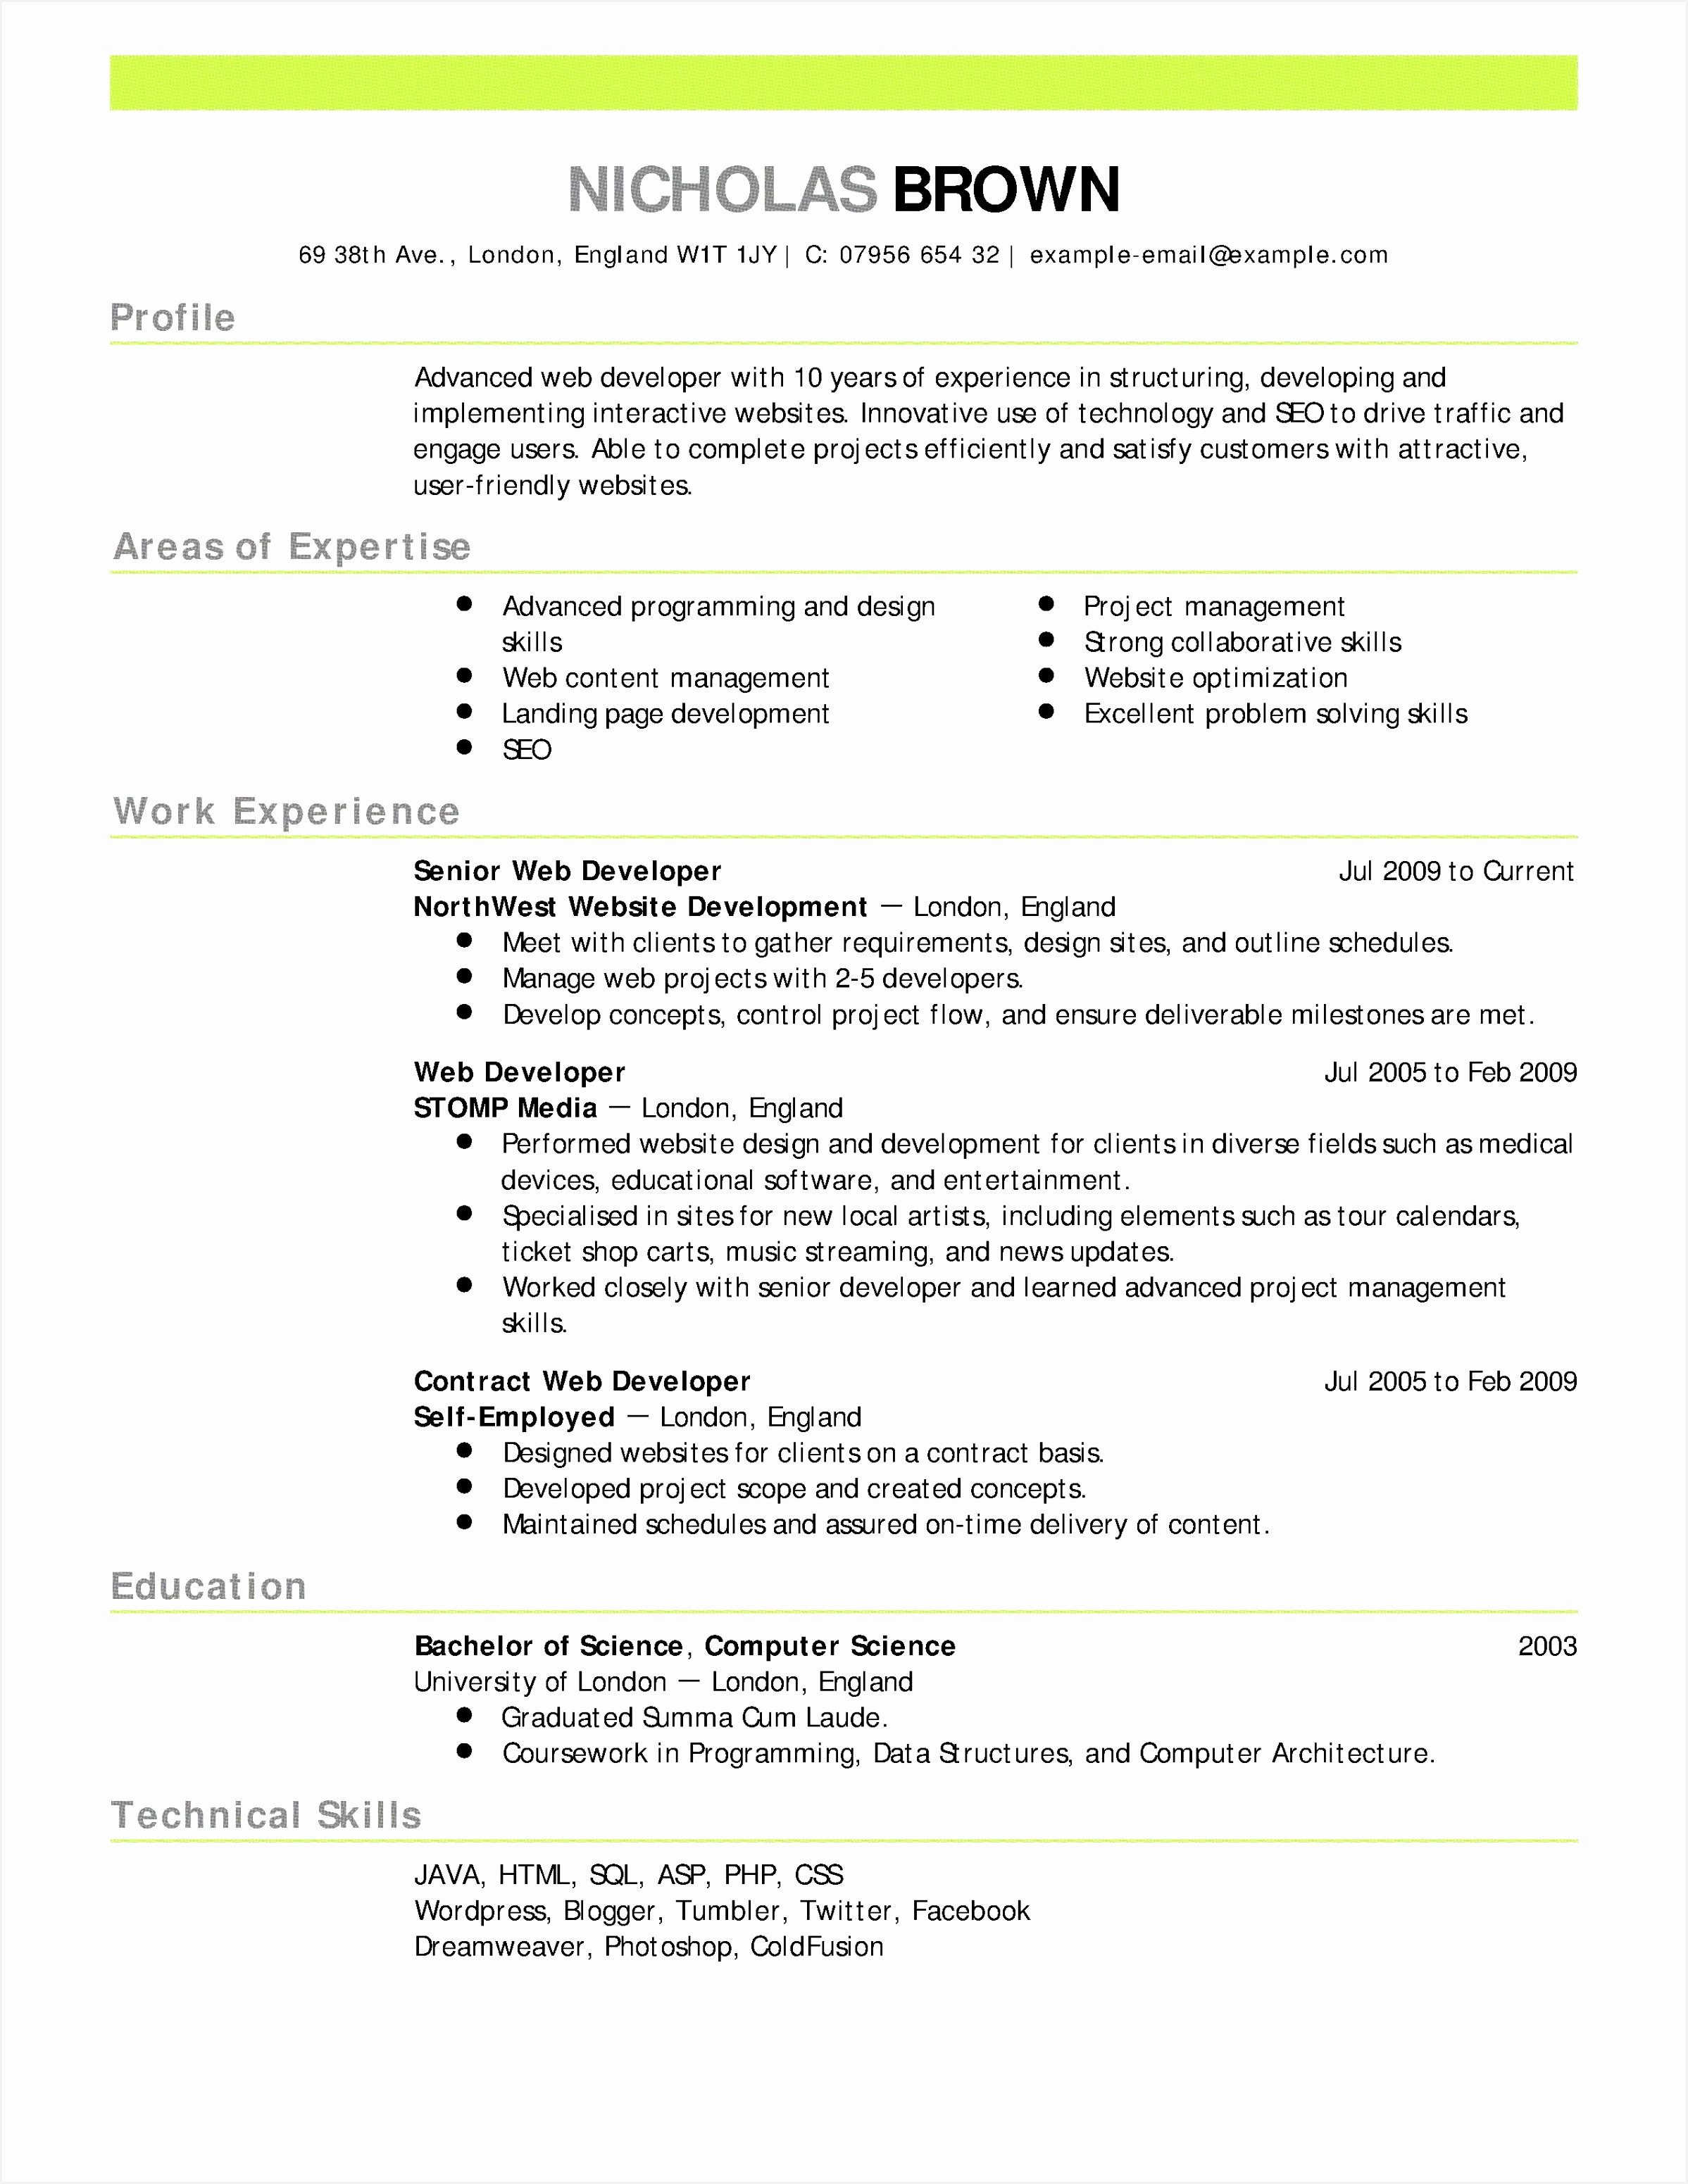 Resume and Cover Letter Help E0qan New Sample Resume and Cover Letter Sample Cfo Resume Template31022397